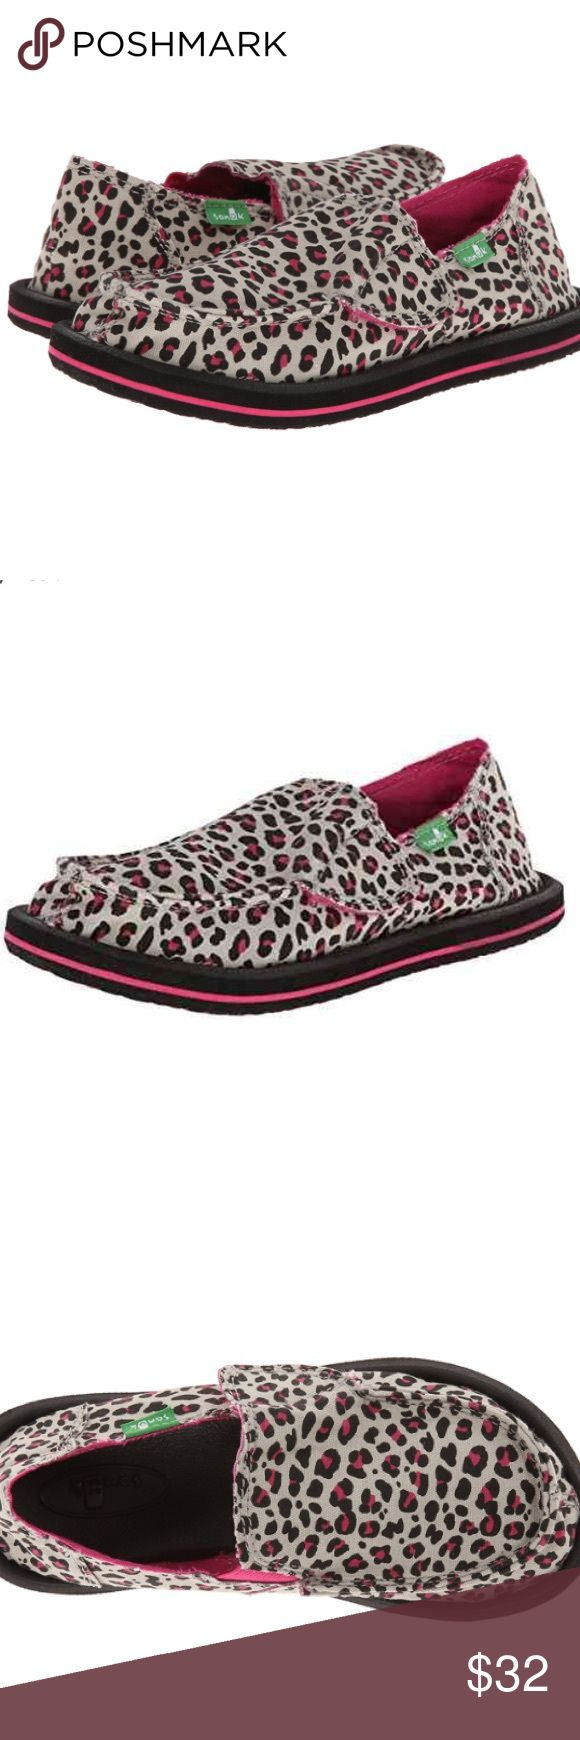 🆕Sanuk Black/Fuchsia Cheetah, 5 M Big Kids Features Textile Imported Synthetic sole Animal print canvas slip-on with cotton canvas lining High rebound molded ethylene vinyl acetate footbed featuring aegis antimicrobial additive Happy u rubber sponge outsol Sanuk Shoes